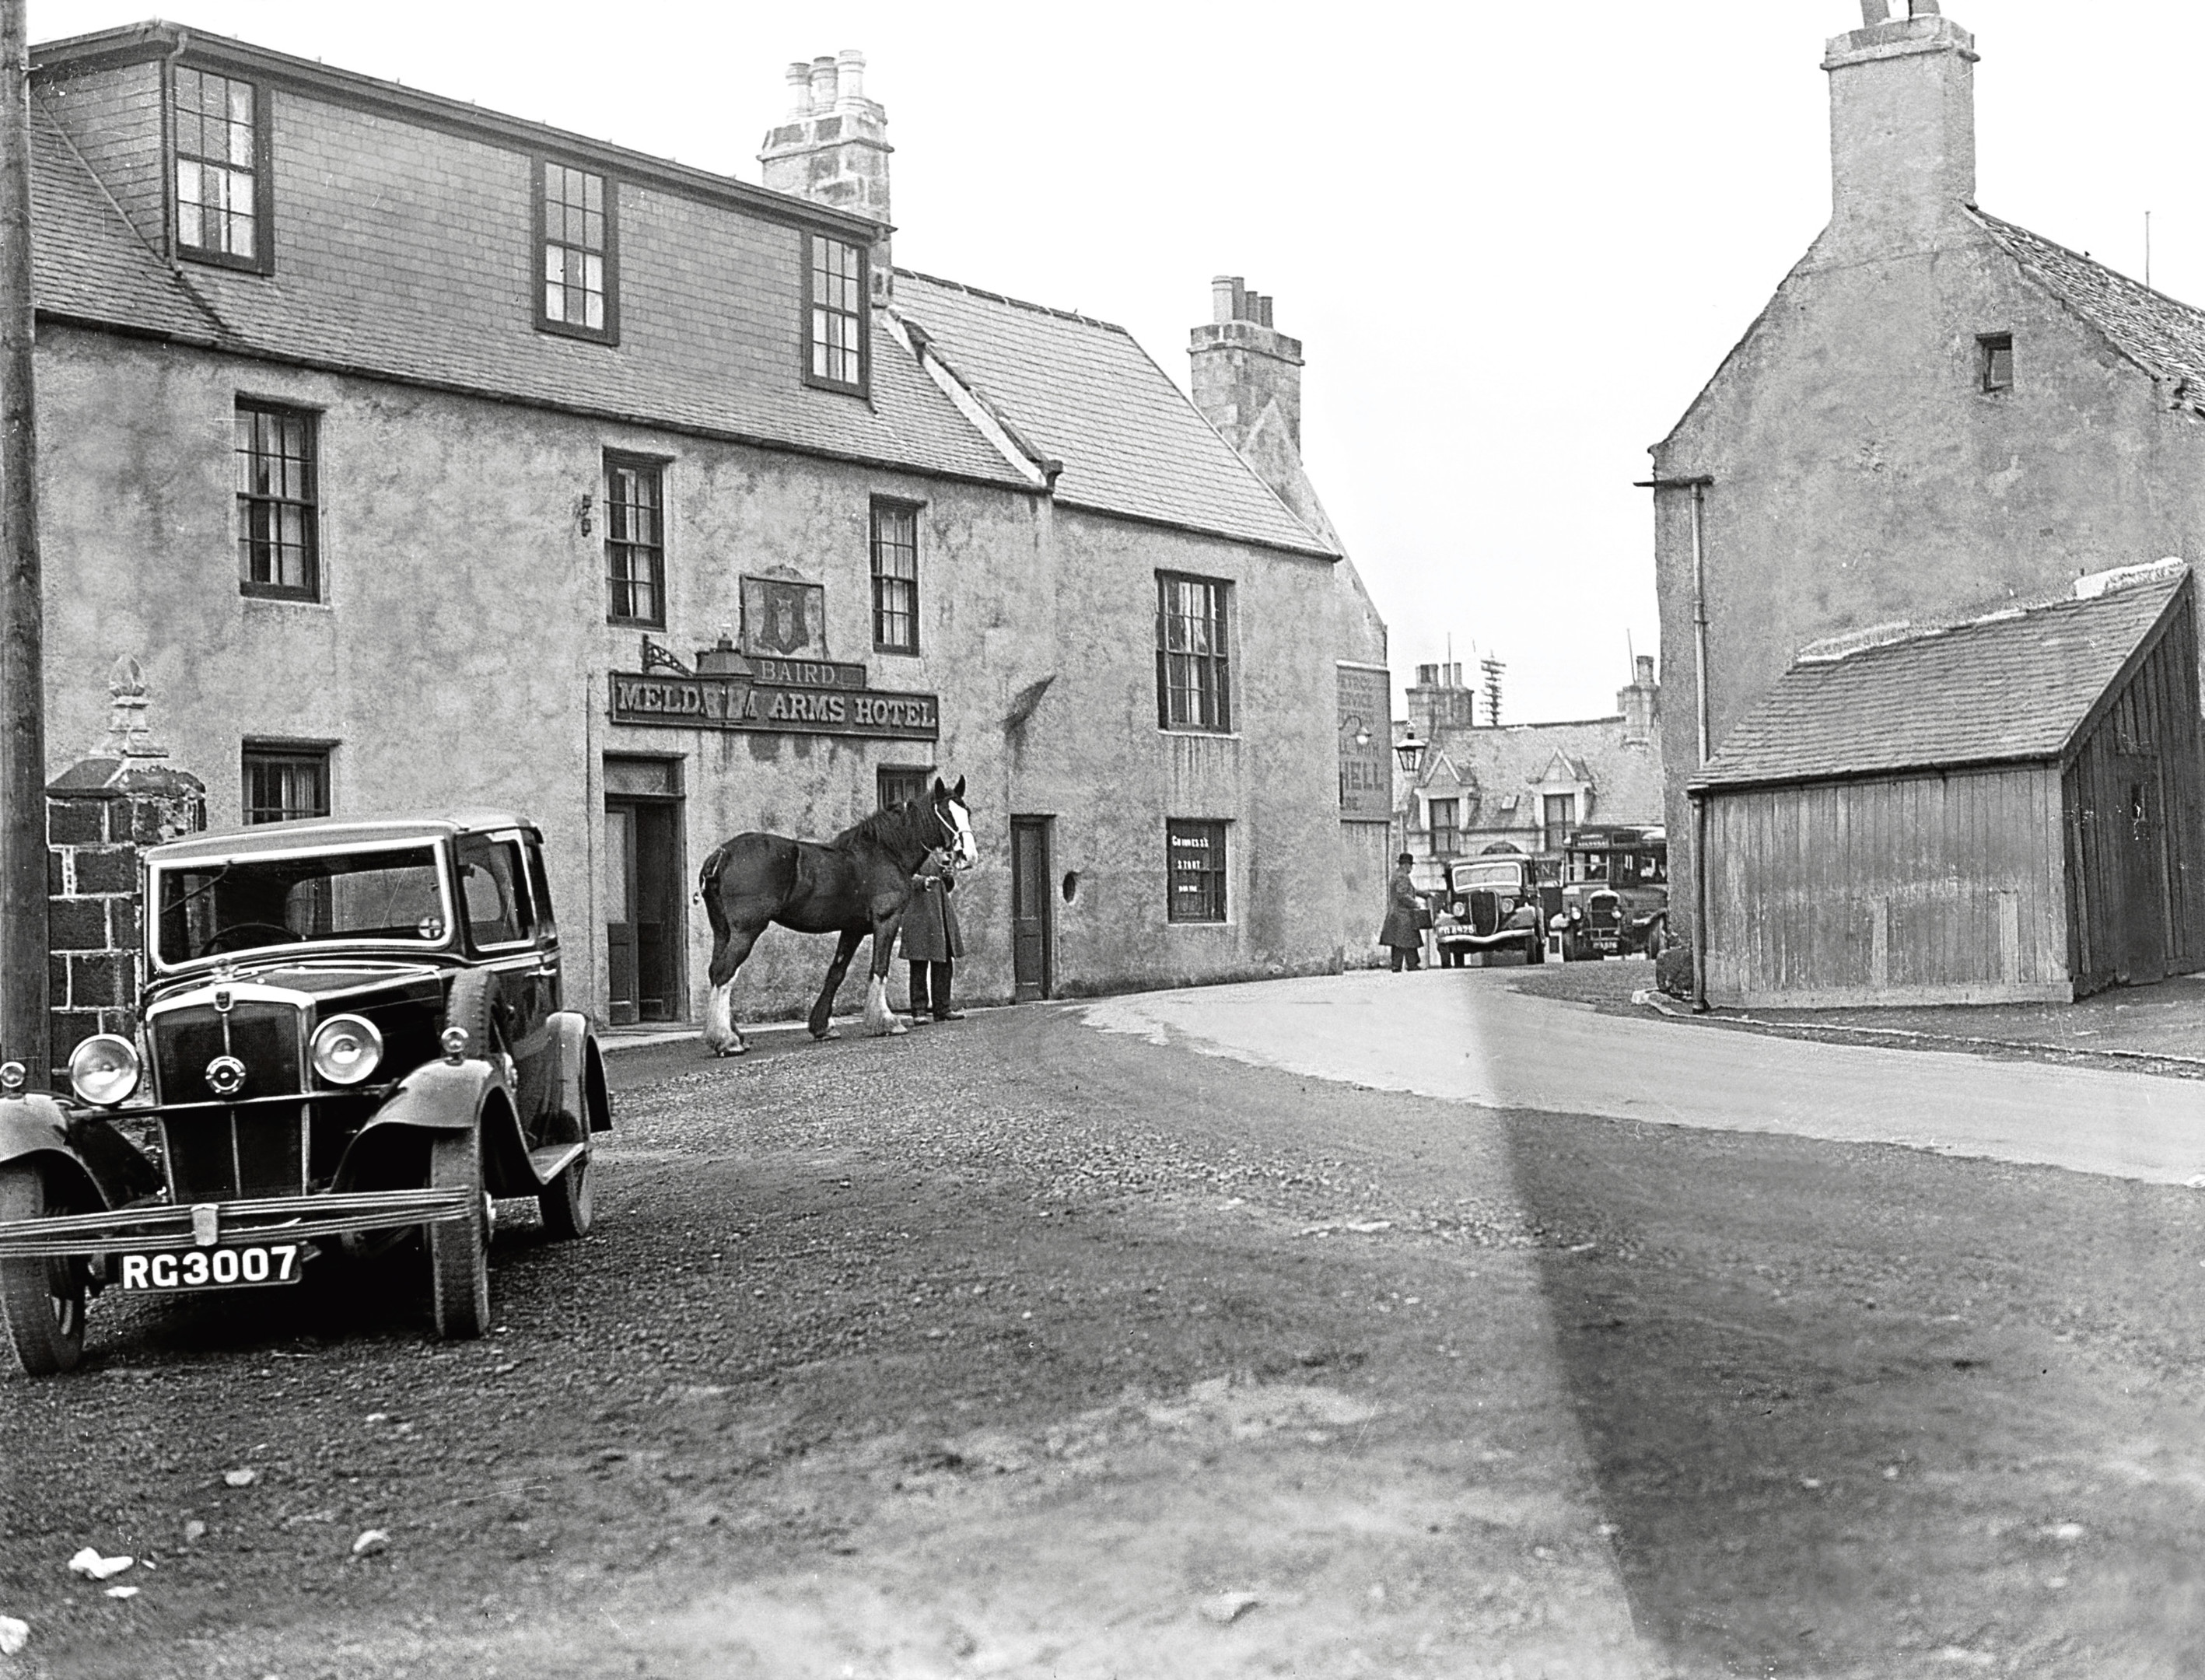 A view of the Meldrum Arms Hotel taken in December 1936.